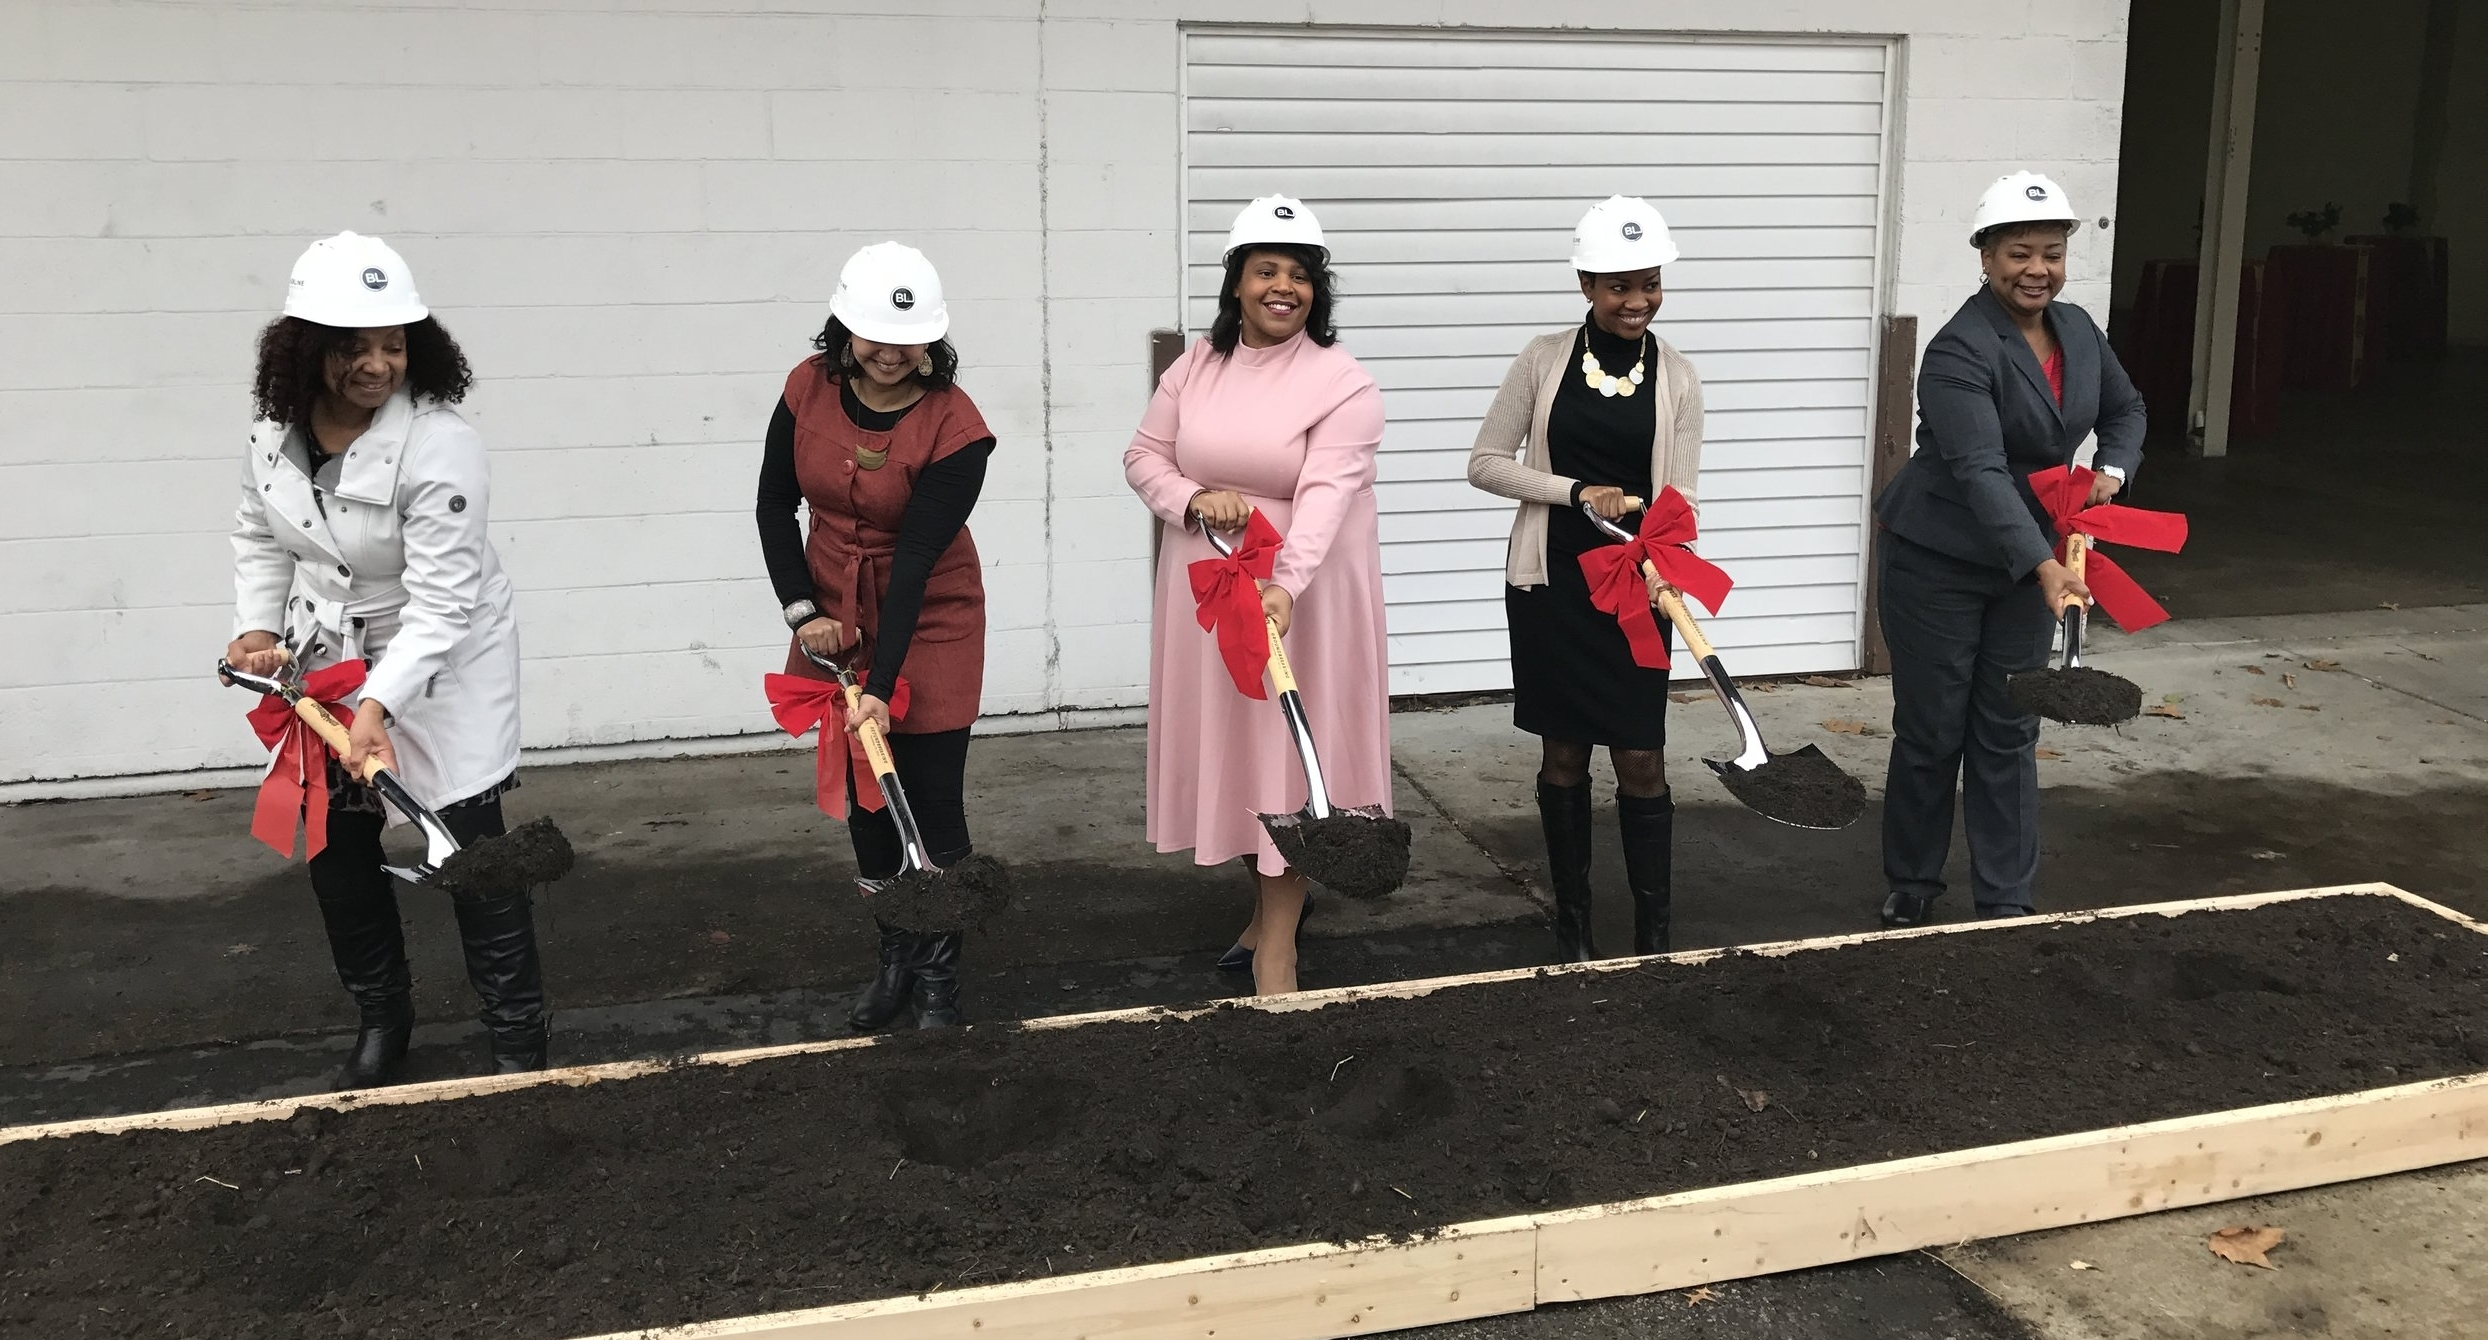 Ellicia Qualls, Founder of Urban Sprouts (middle) breaks ground with her colleagues -